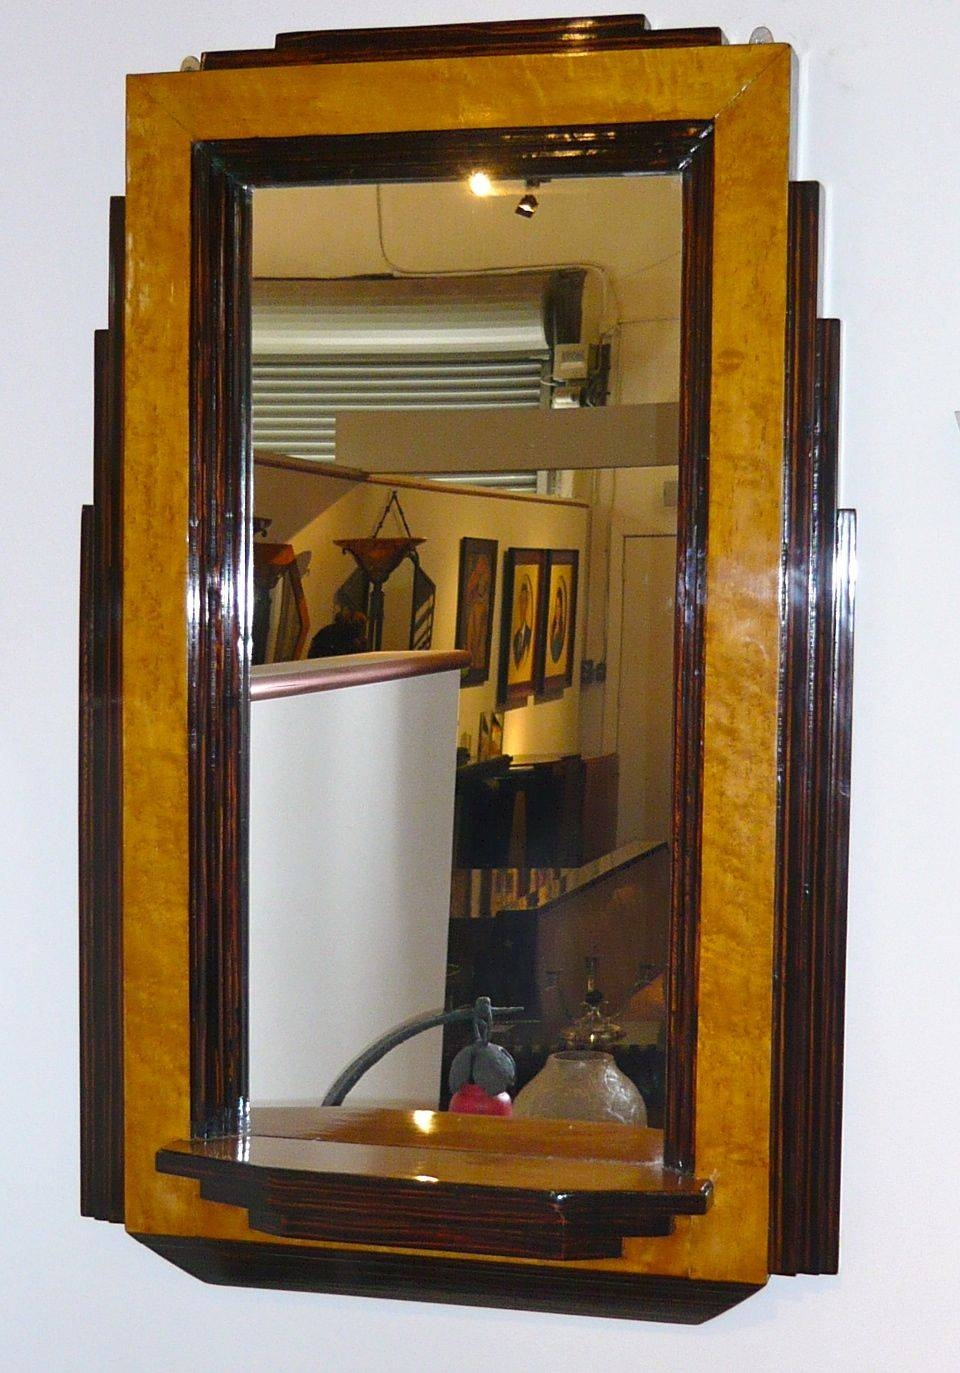 Art Deco Mirrors For Sale | Art Deco Collection throughout Art Nouveau Mirrors (Image 6 of 25)